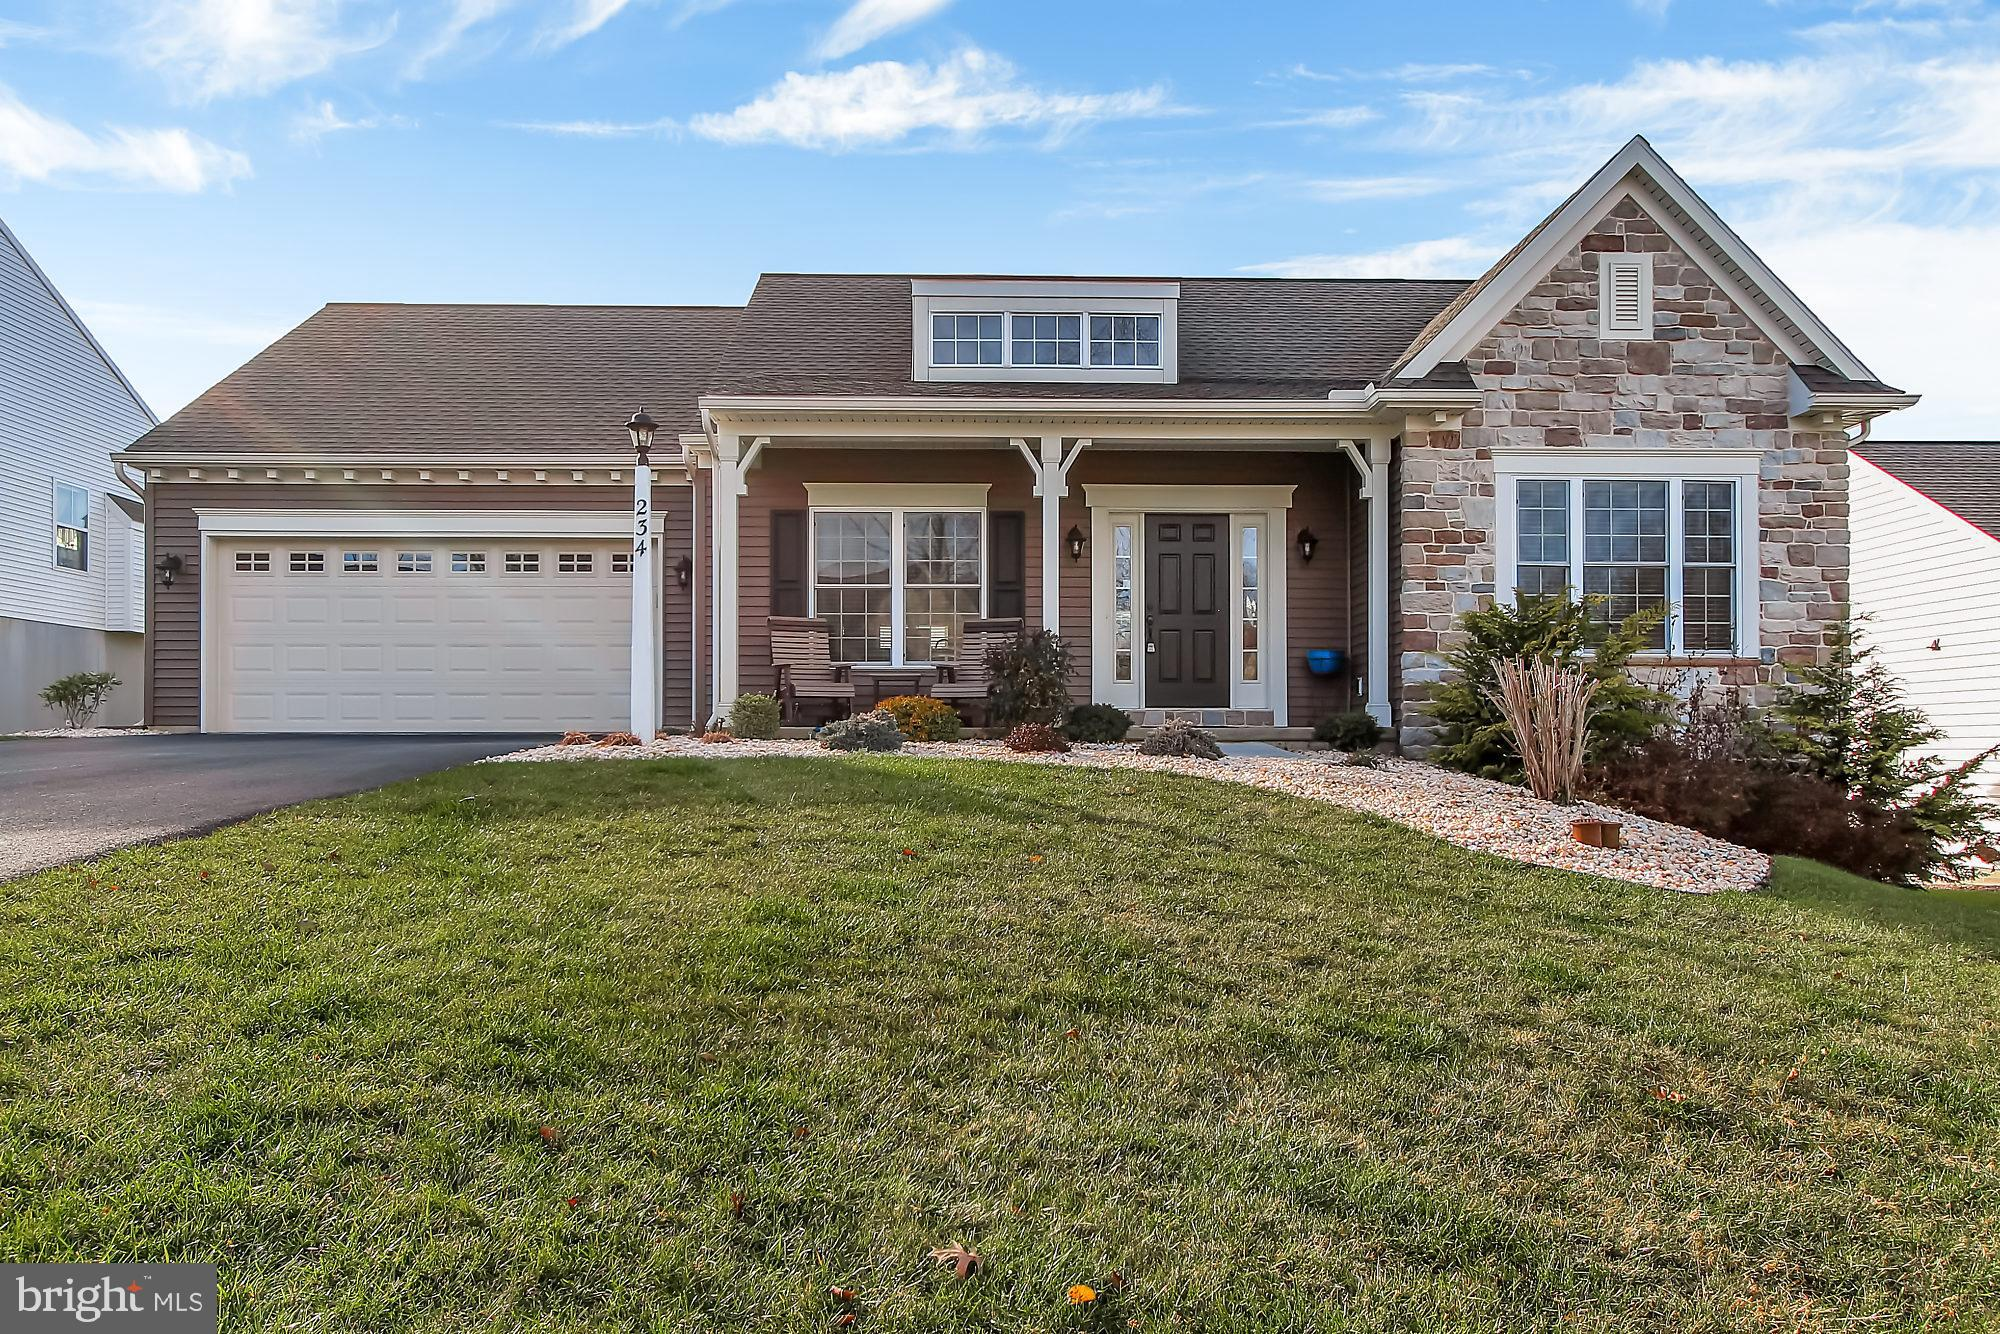 234 COPPER BEECH LANE, WOMELSDORF, PA 19567